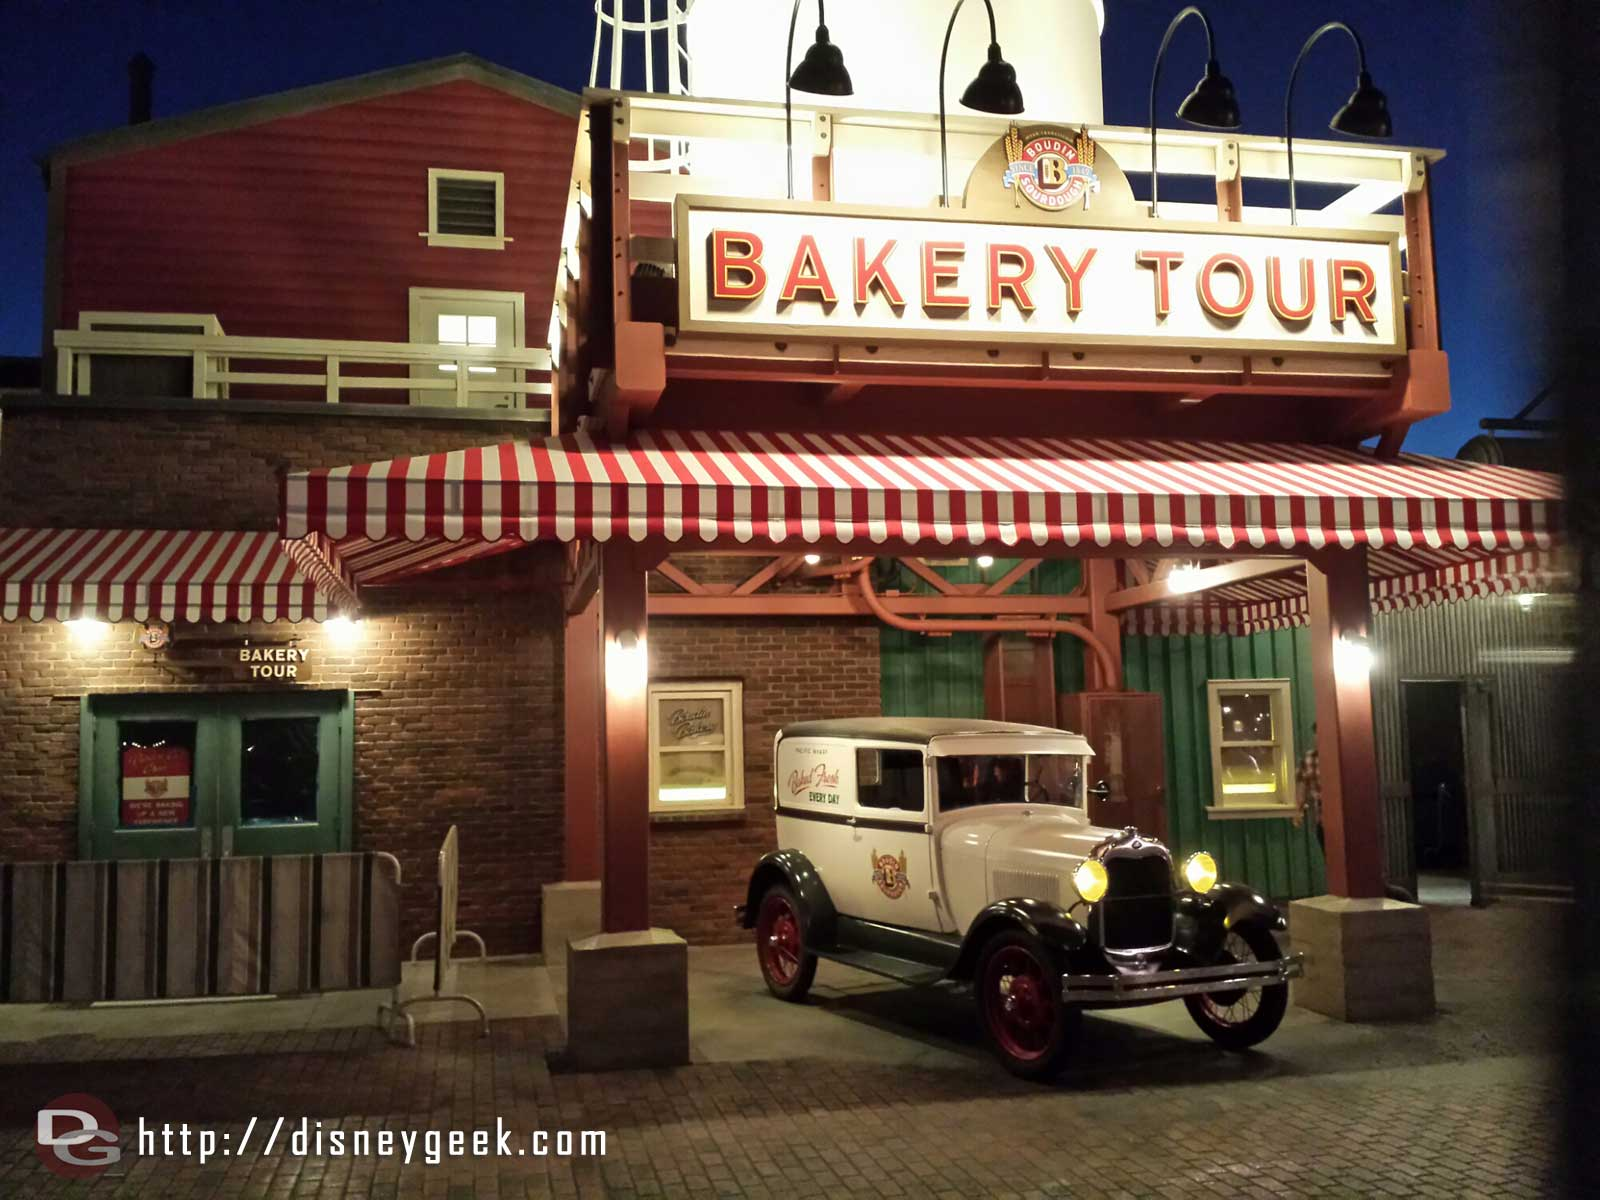 The new Bakery Tour sign, awning & truck